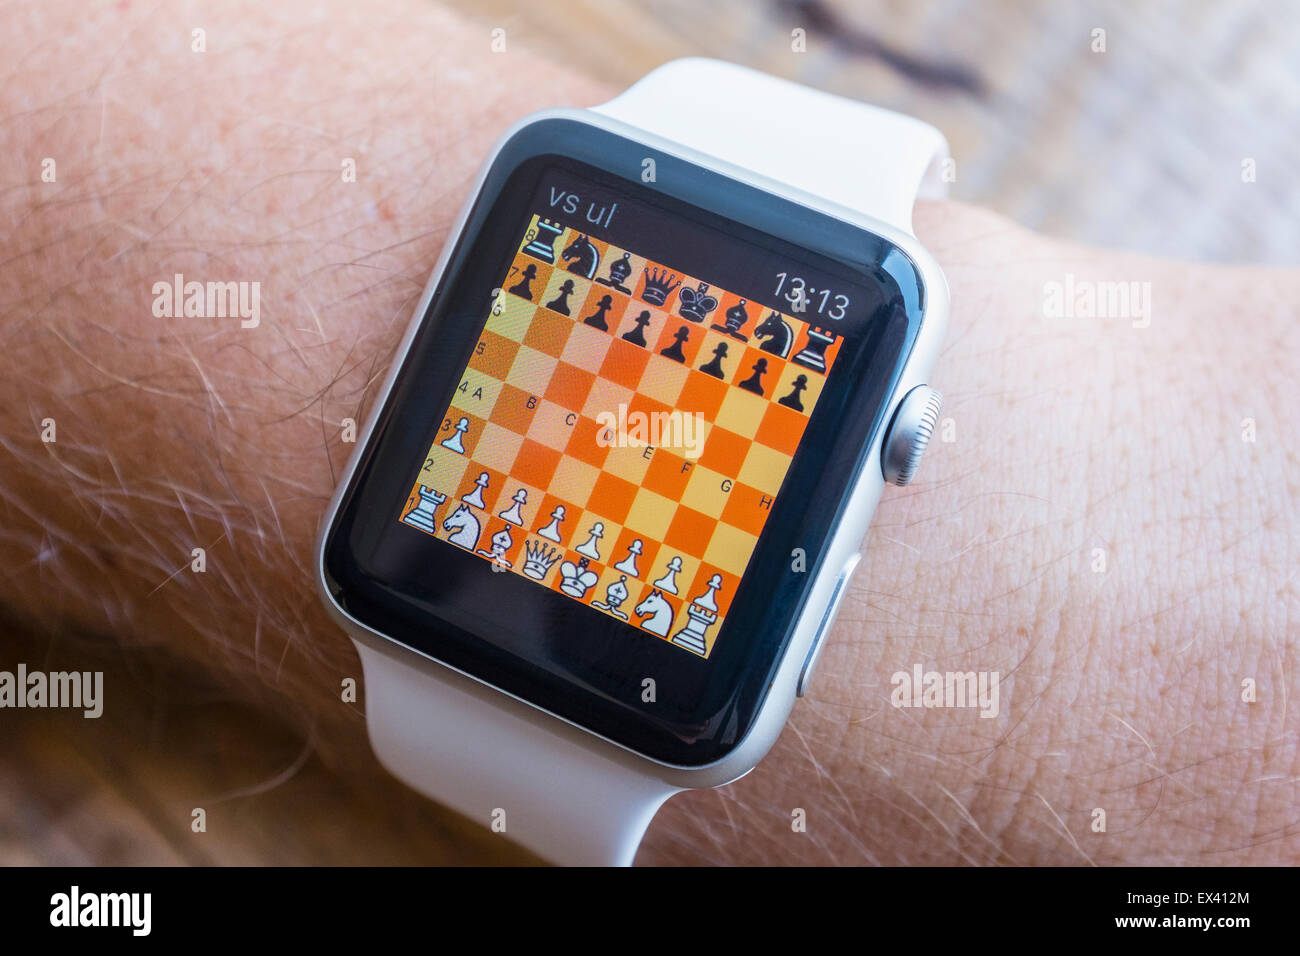 Chess game on an Apple Watch - Stock Image